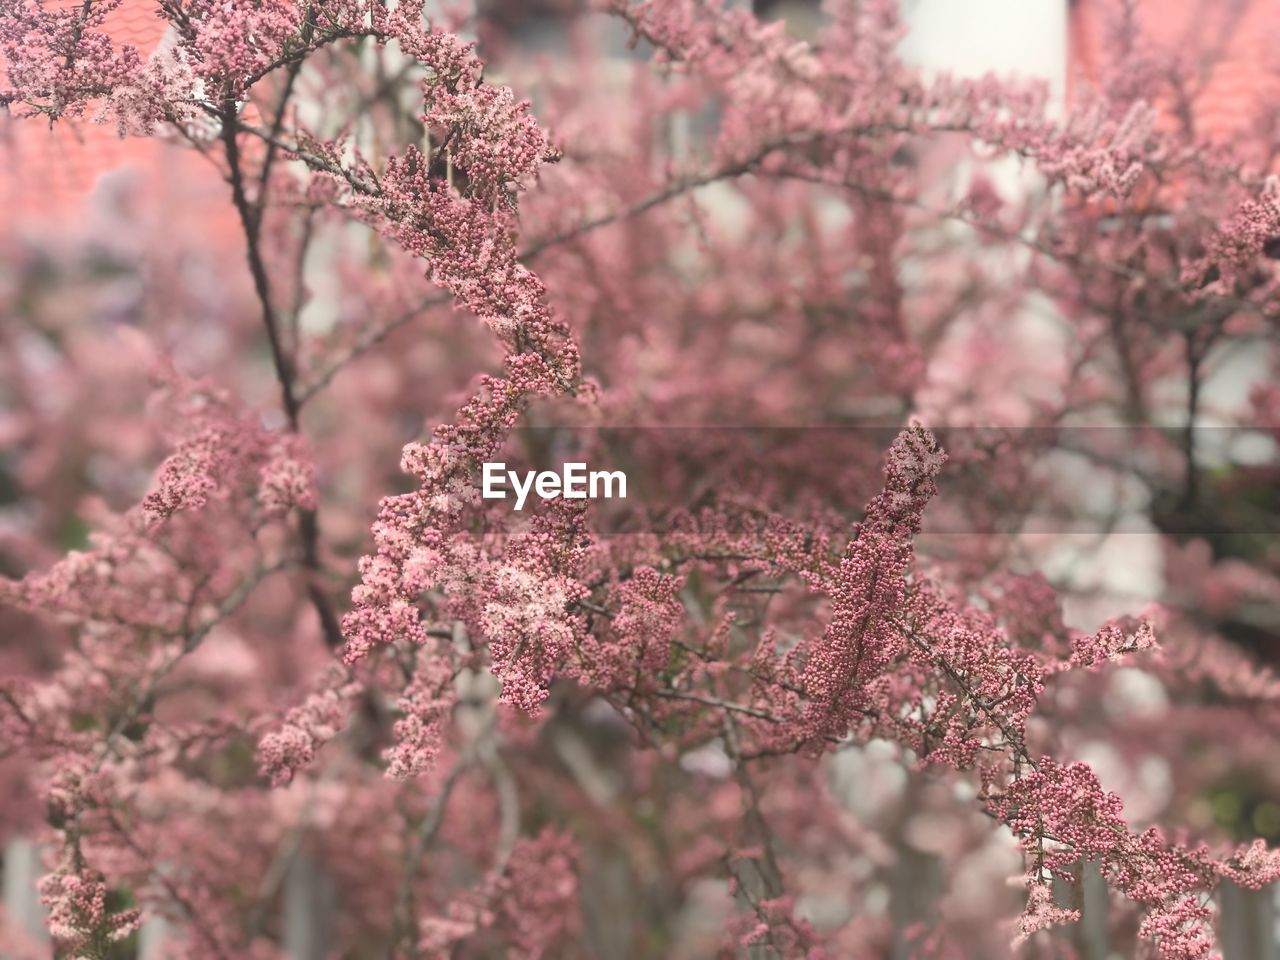 flowering plant, flower, plant, beauty in nature, tree, freshness, pink color, growth, blossom, springtime, fragility, branch, nature, vulnerability, no people, close-up, day, selective focus, cherry blossom, outdoors, cherry tree, flower head, plum blossom, spring